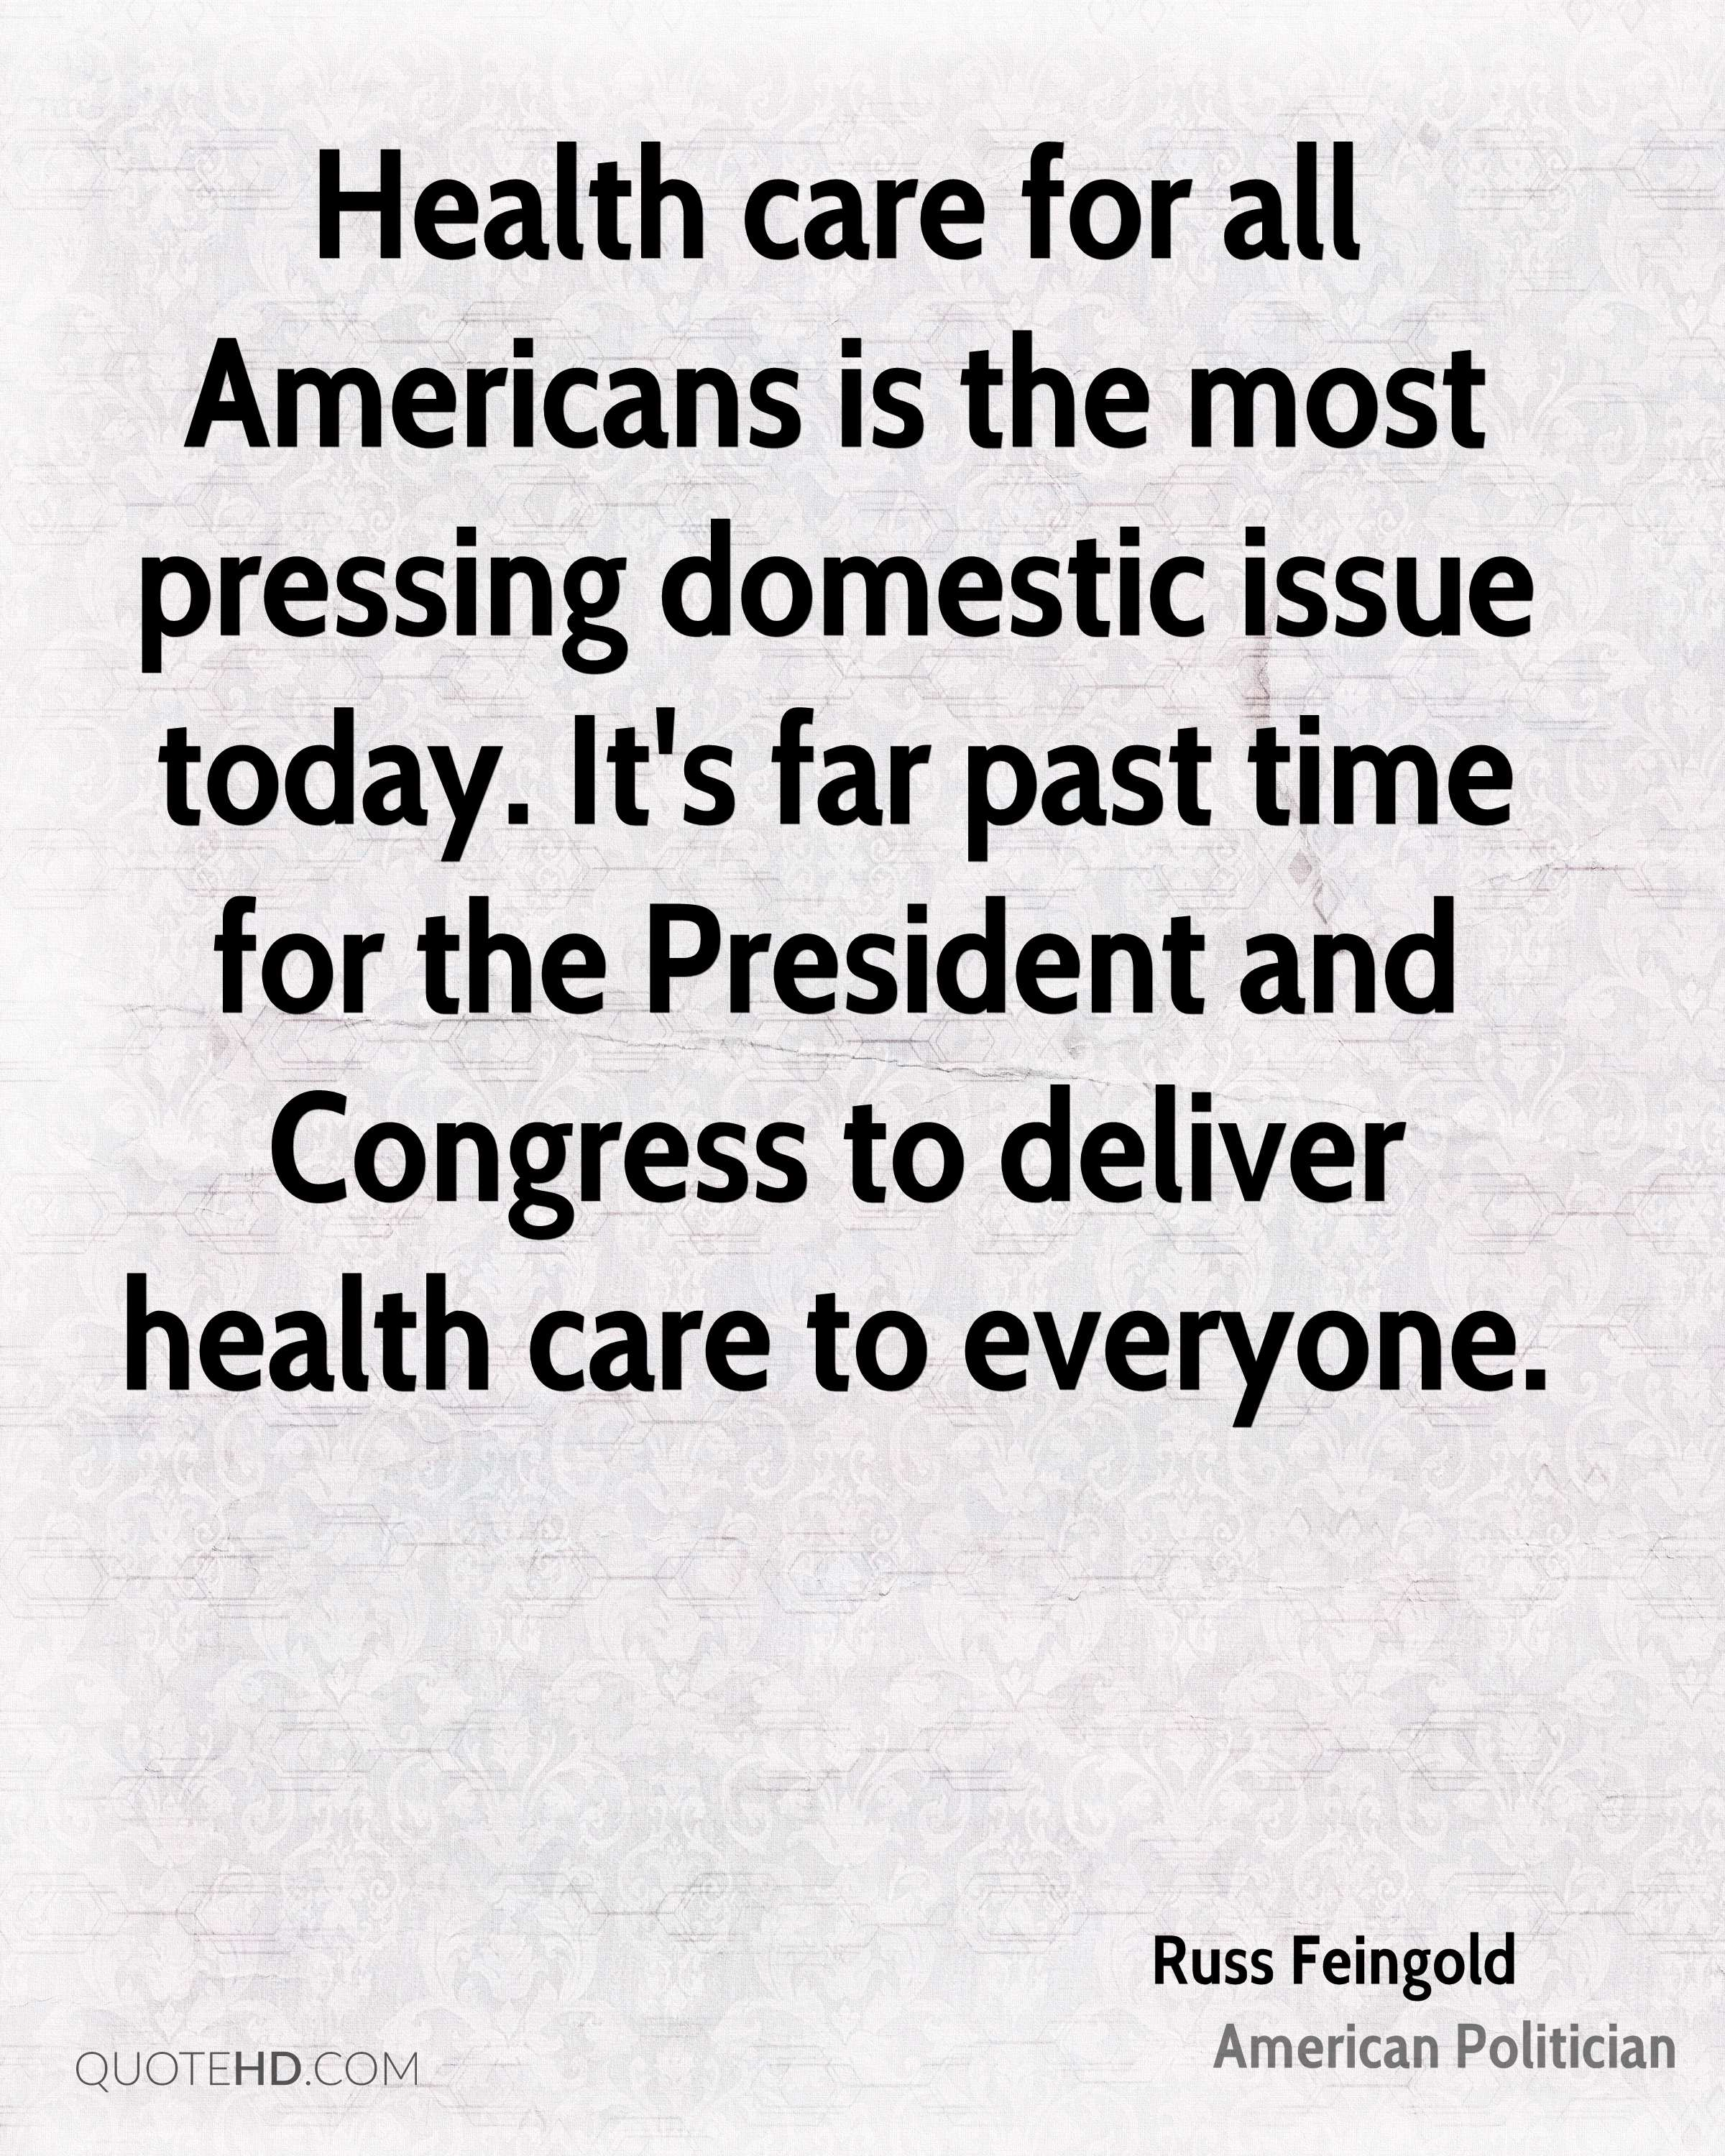 Health care for all Americans is the most pressing domestic issue today. It's far past time for the President and Congress to deliver health care to everyone.